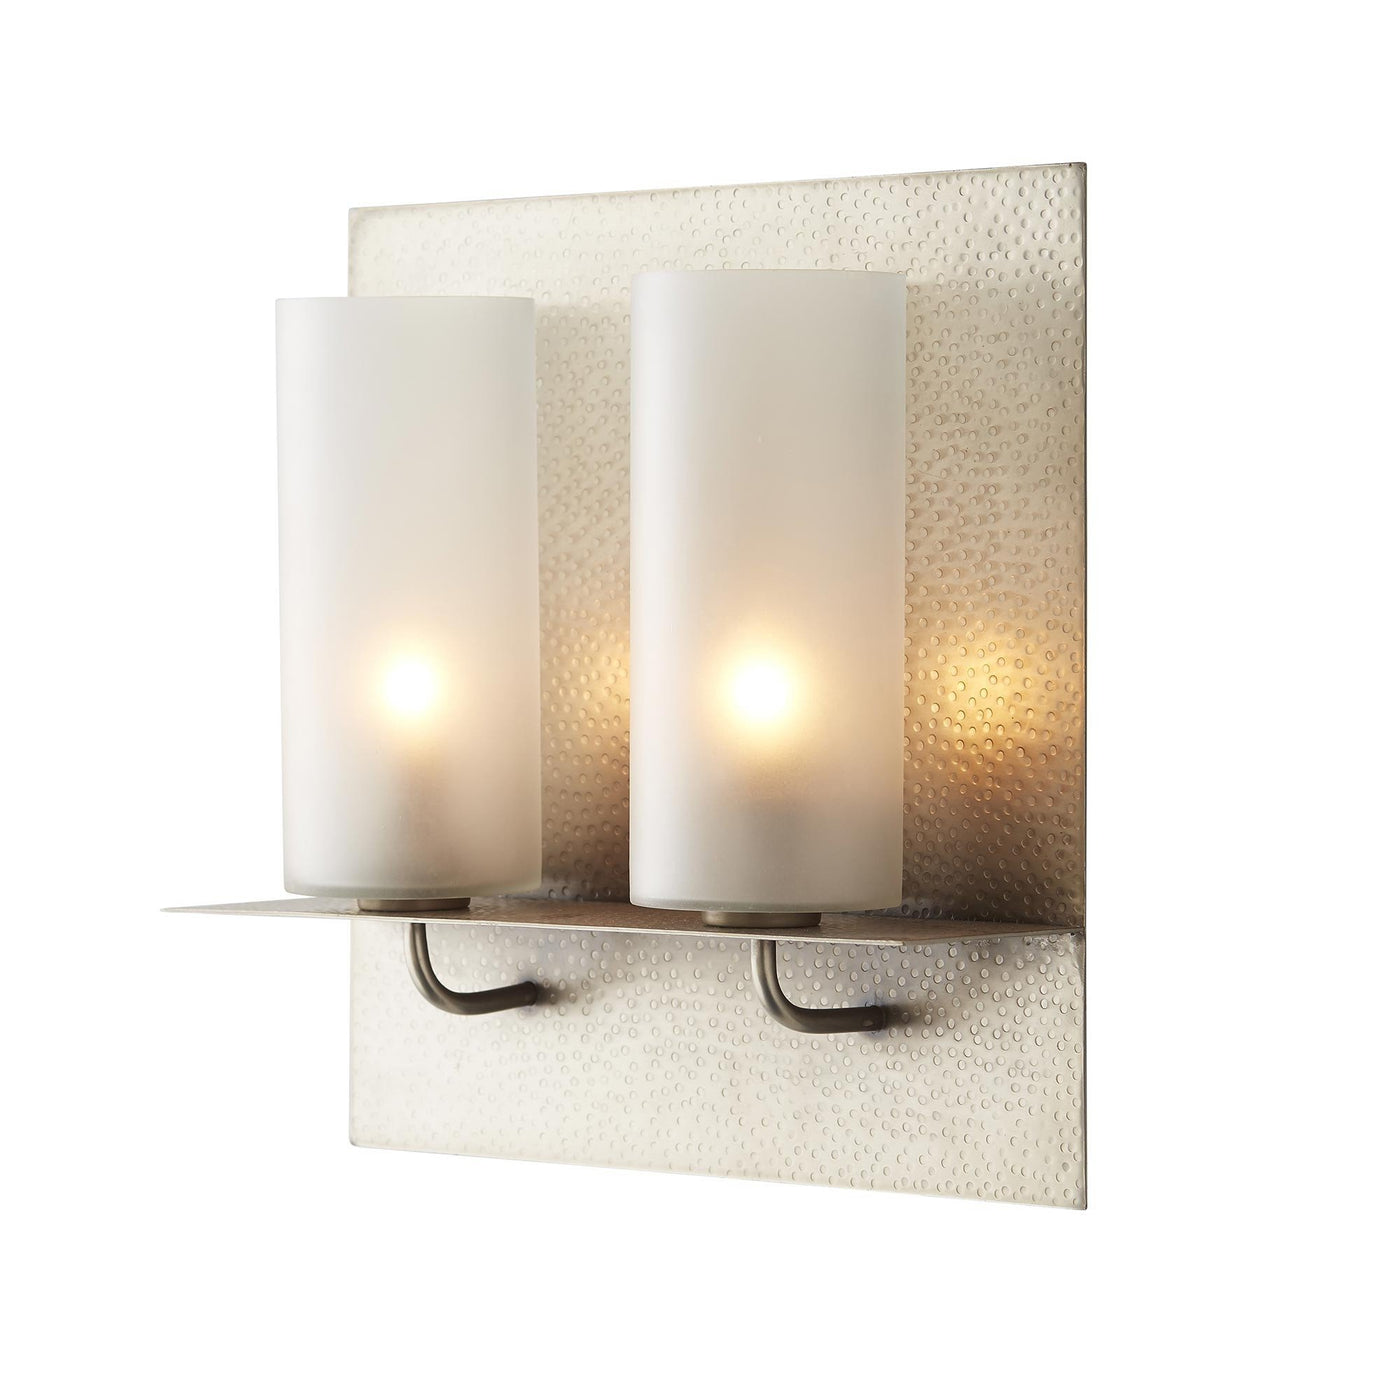 Arteriors Home Kady Sconce Lighting Silver Wall Iron